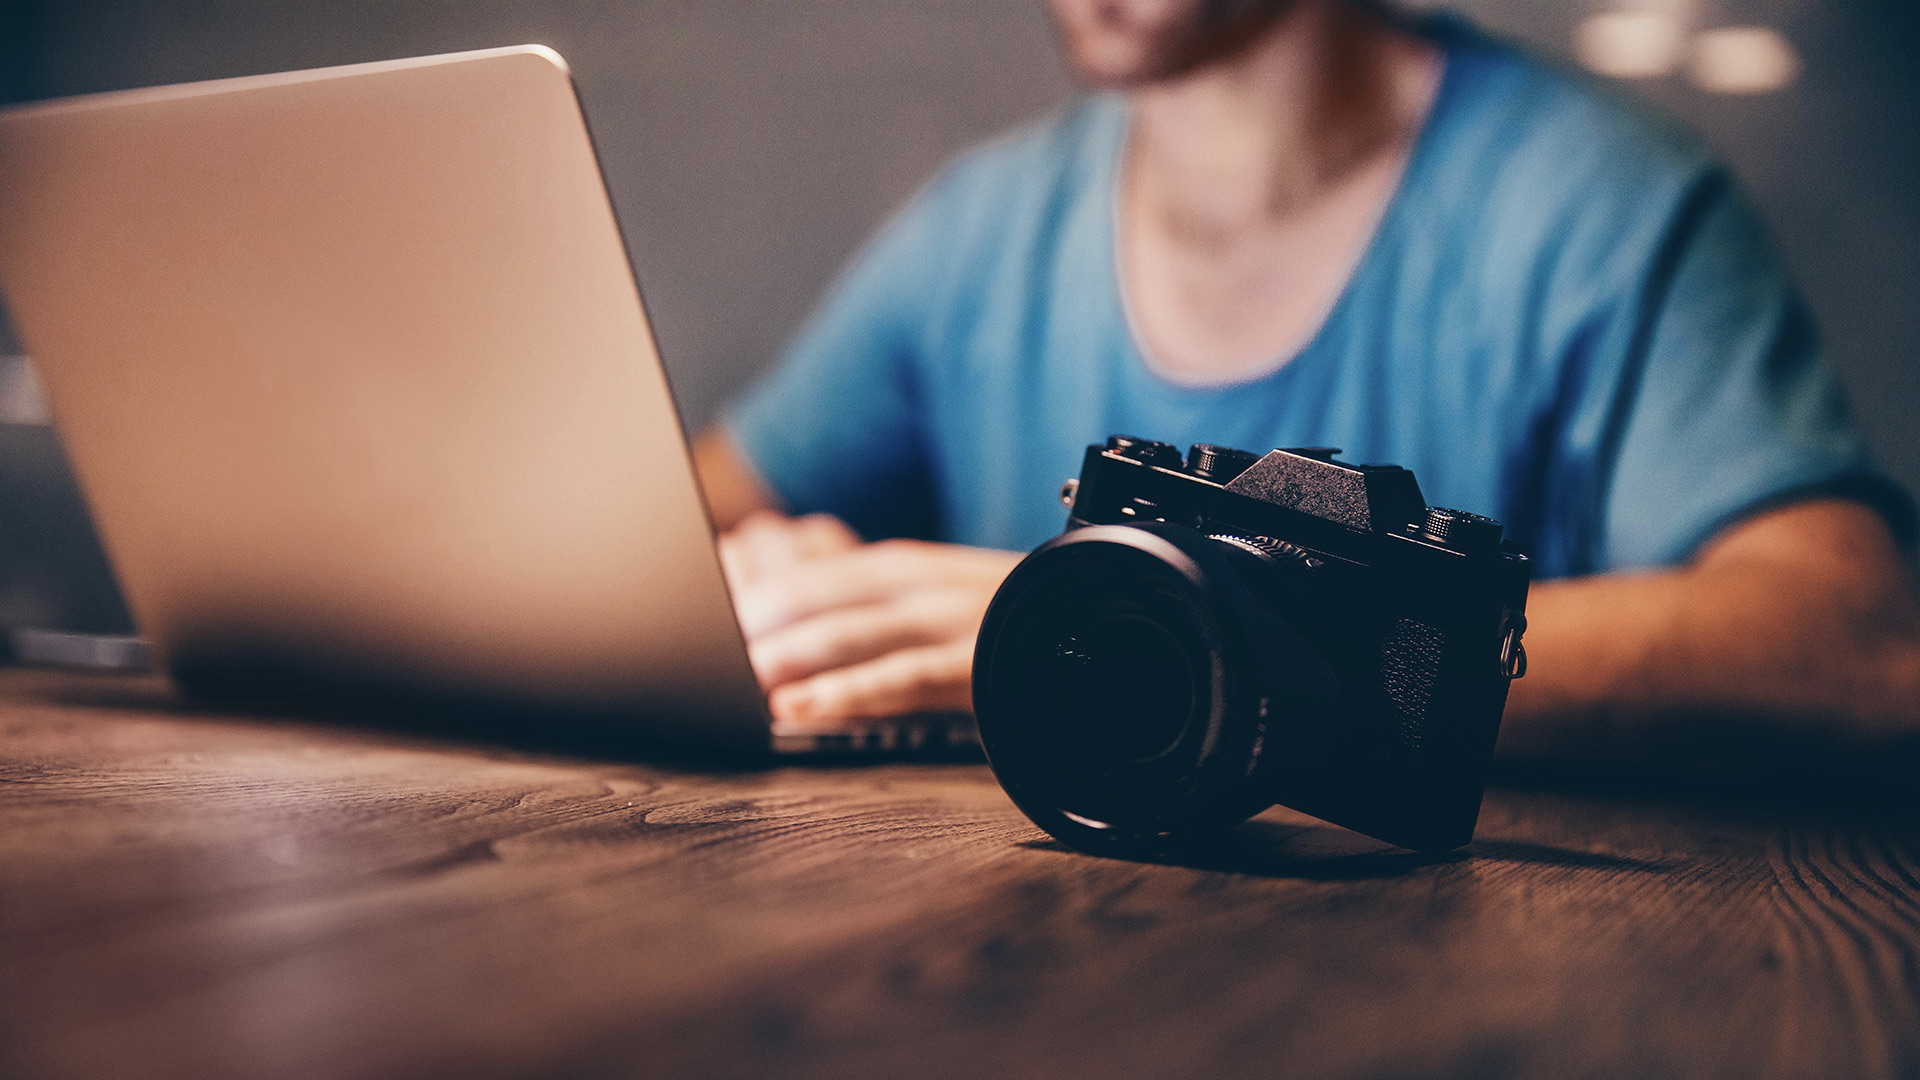 Best practices: 5 editing tips for great commercial content